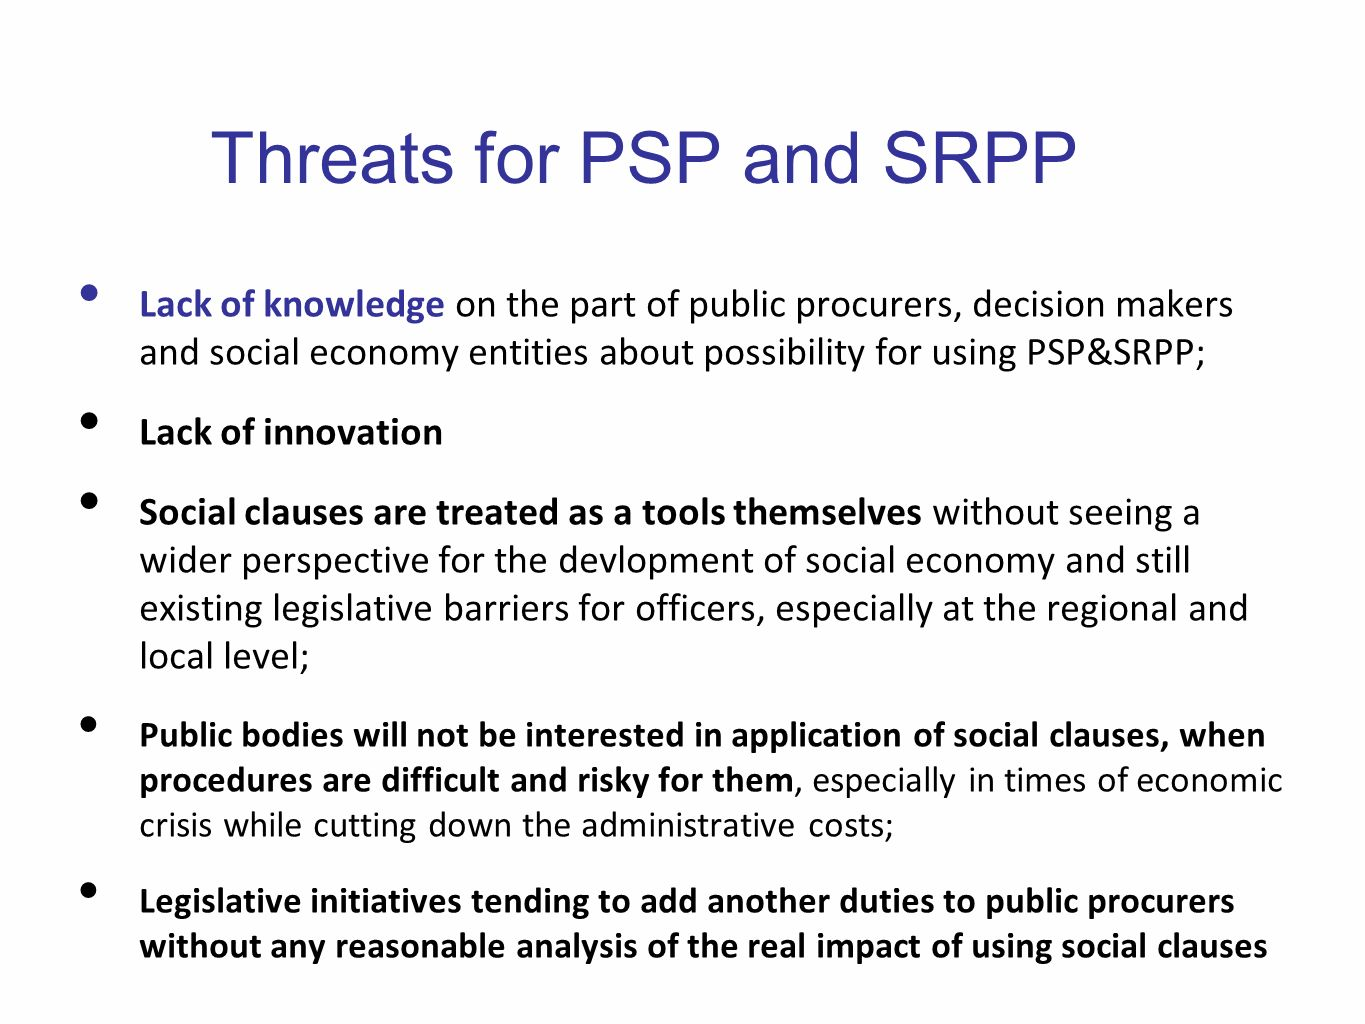 Threats for PSP and SRPP Lack of knowledge on the part of public procurers, decision makers and social economy entities about possibility for using PSP&SRPP; Lack of innovation Social clauses are treated as a tools themselves without seeing a wider perspective for the devlopment of social economy and still existing legislative barriers for officers, especially at the regional and local level; Public bodies will not be interested in application of social clauses, when procedures are difficult and risky for them, especially in times of economic crisis while cutting down the administrative costs; Legislative initiatives tending to add another duties to public procurers without any reasonable analysis of the real impact of using social clauses